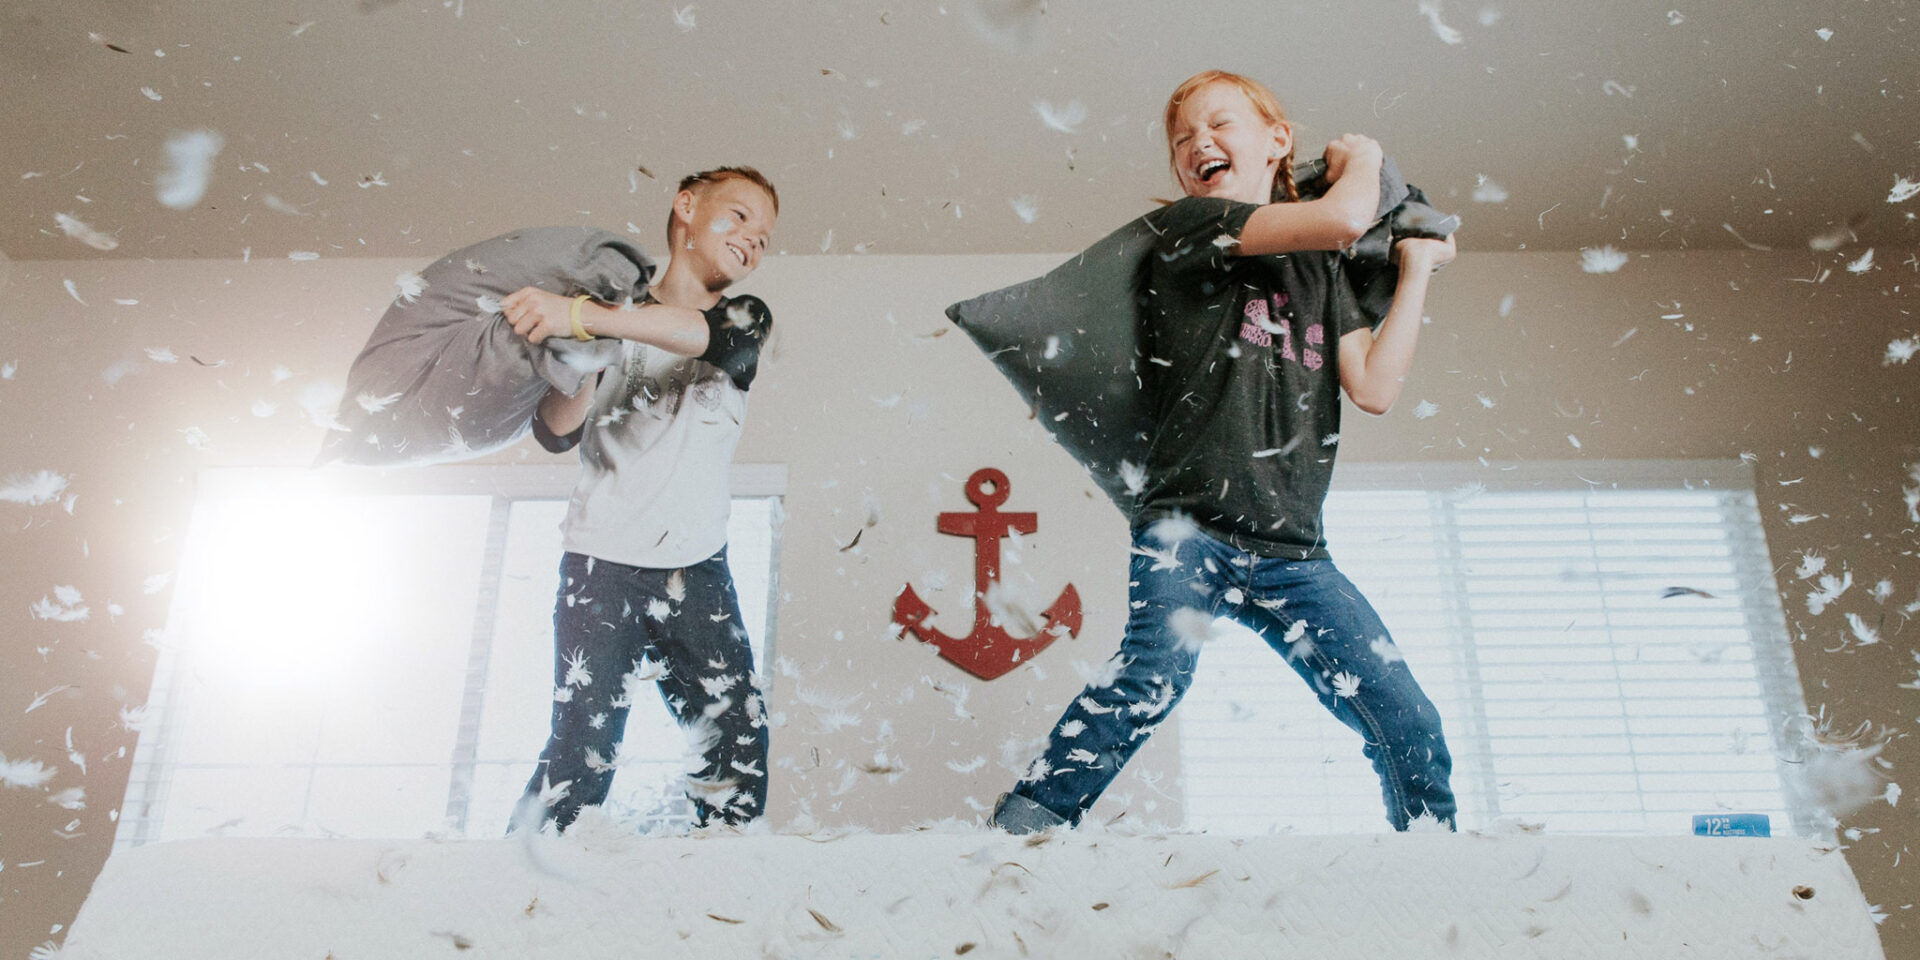 Stuck indoors with nothing to do? Here are 6 easy, fun ways to keep kids active at home